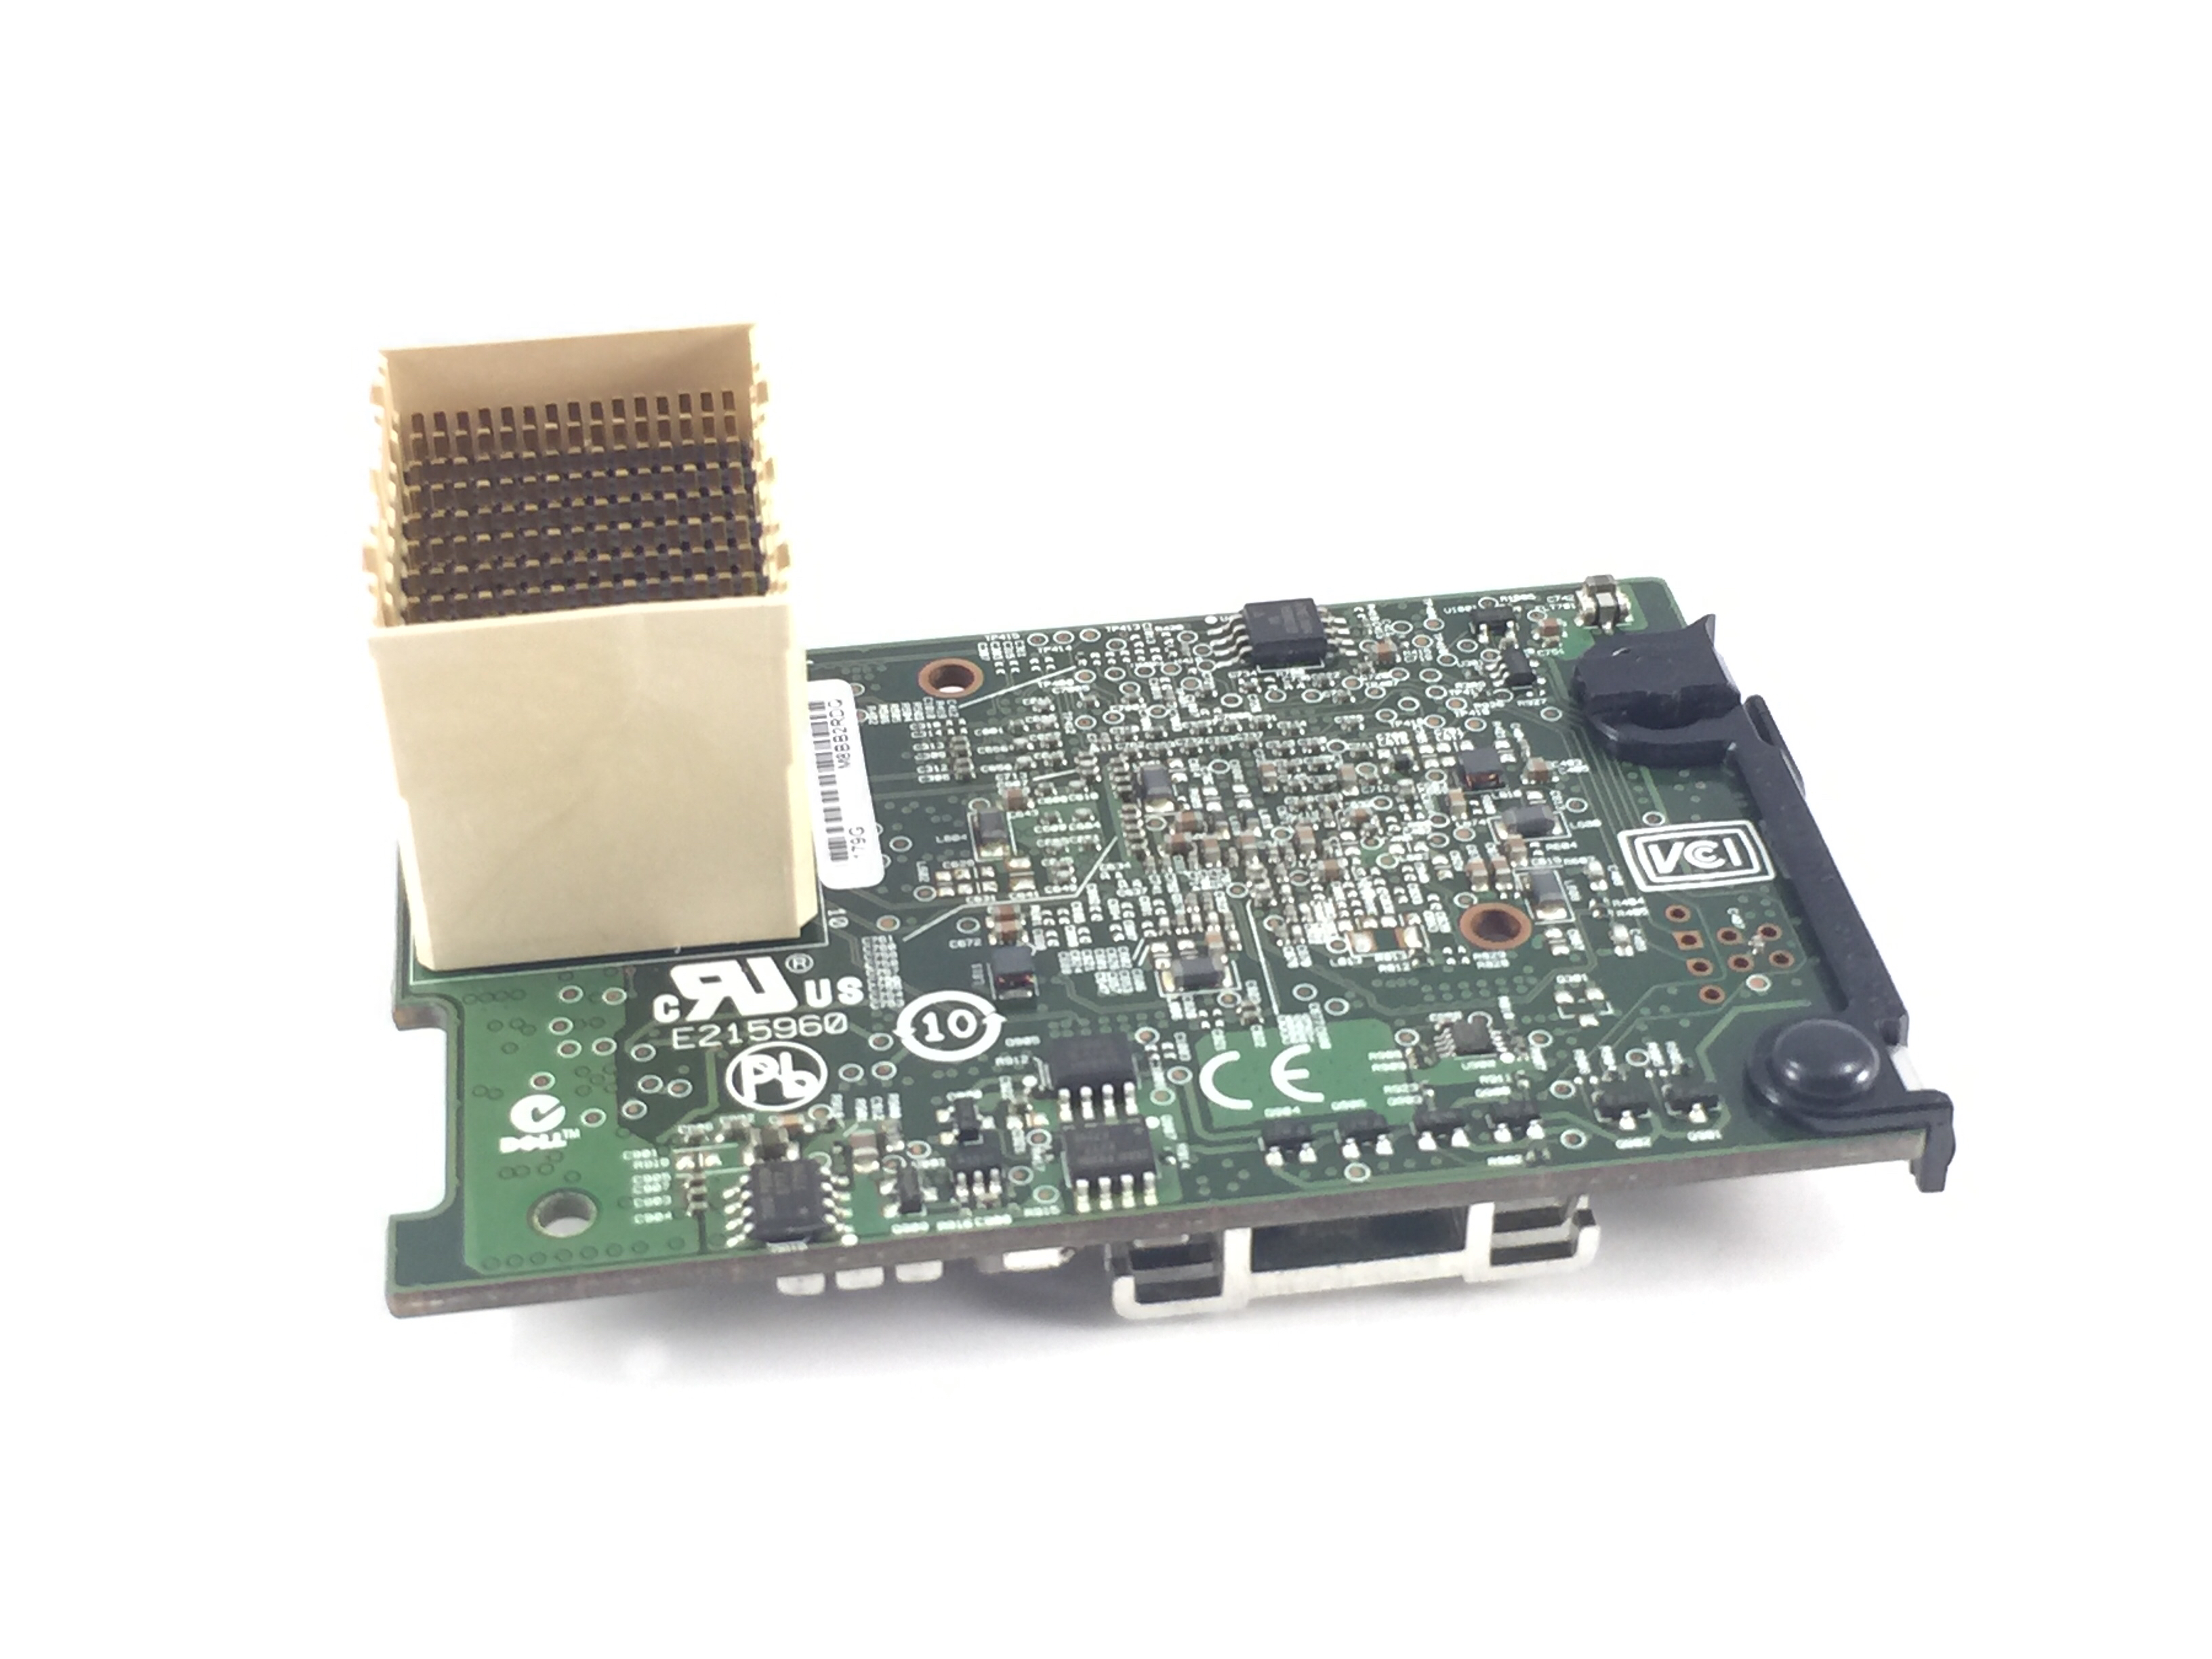 Dell Broadcom 5709 Dual Port Gigabit Nic Mezzanine Card (H093G)